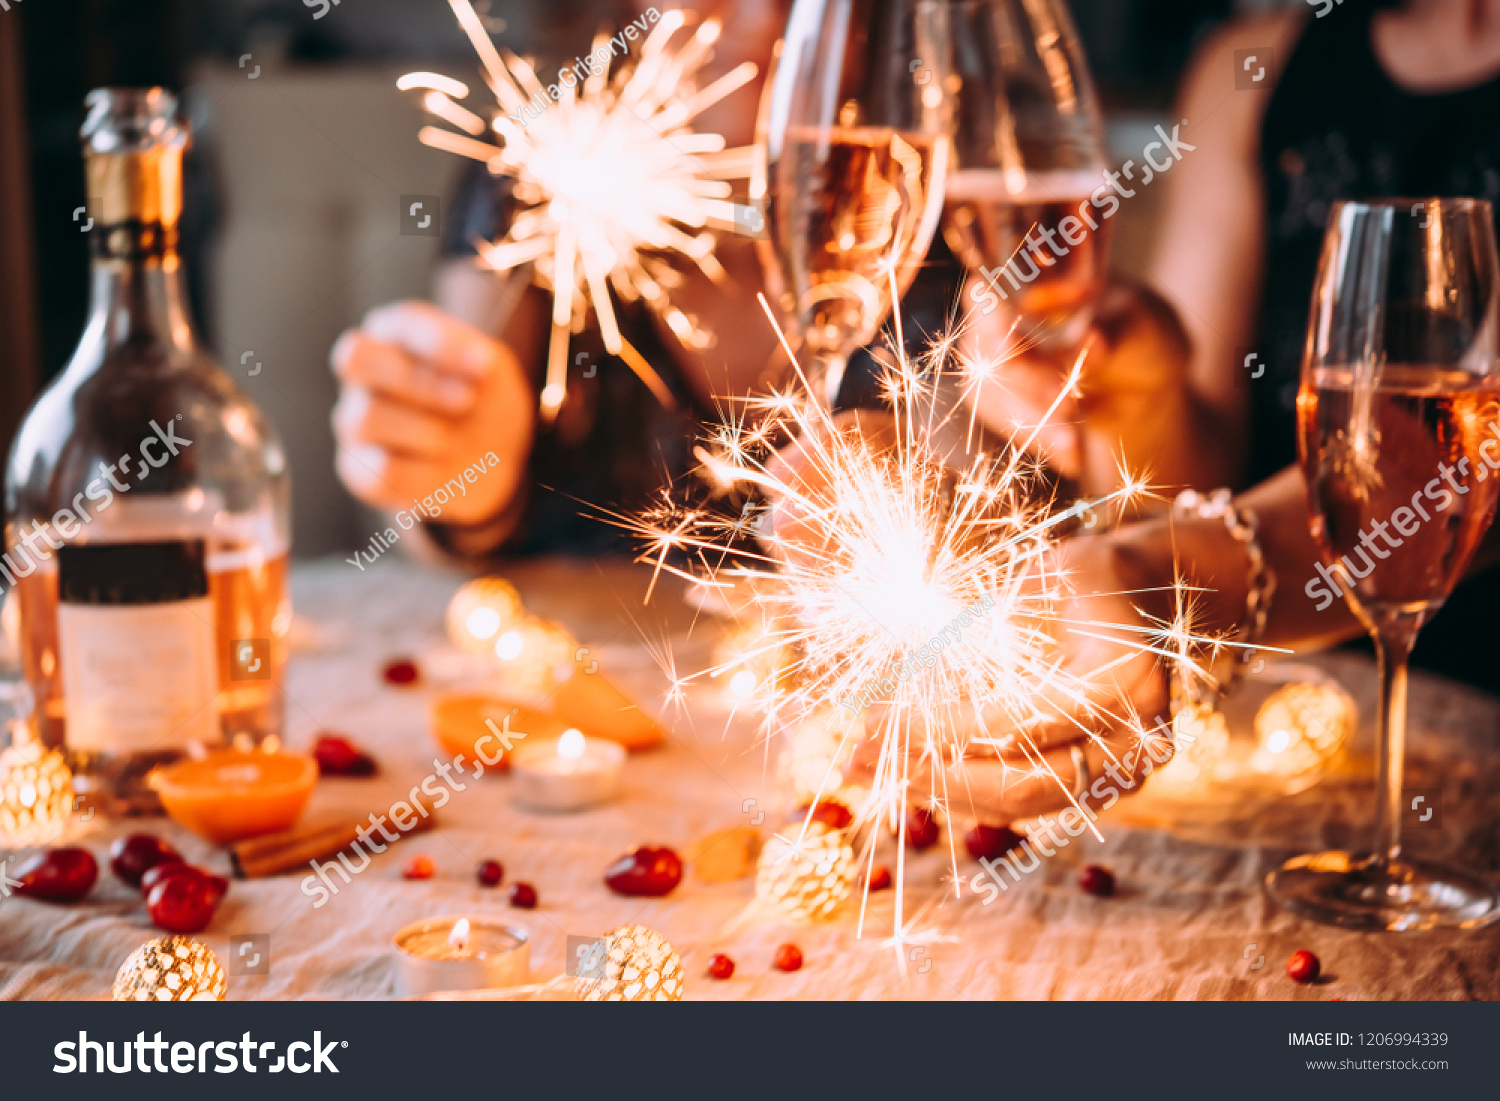 Friends celebrating Christmas or New Year eve party with Bengal lights and rose champagne. #1206994339